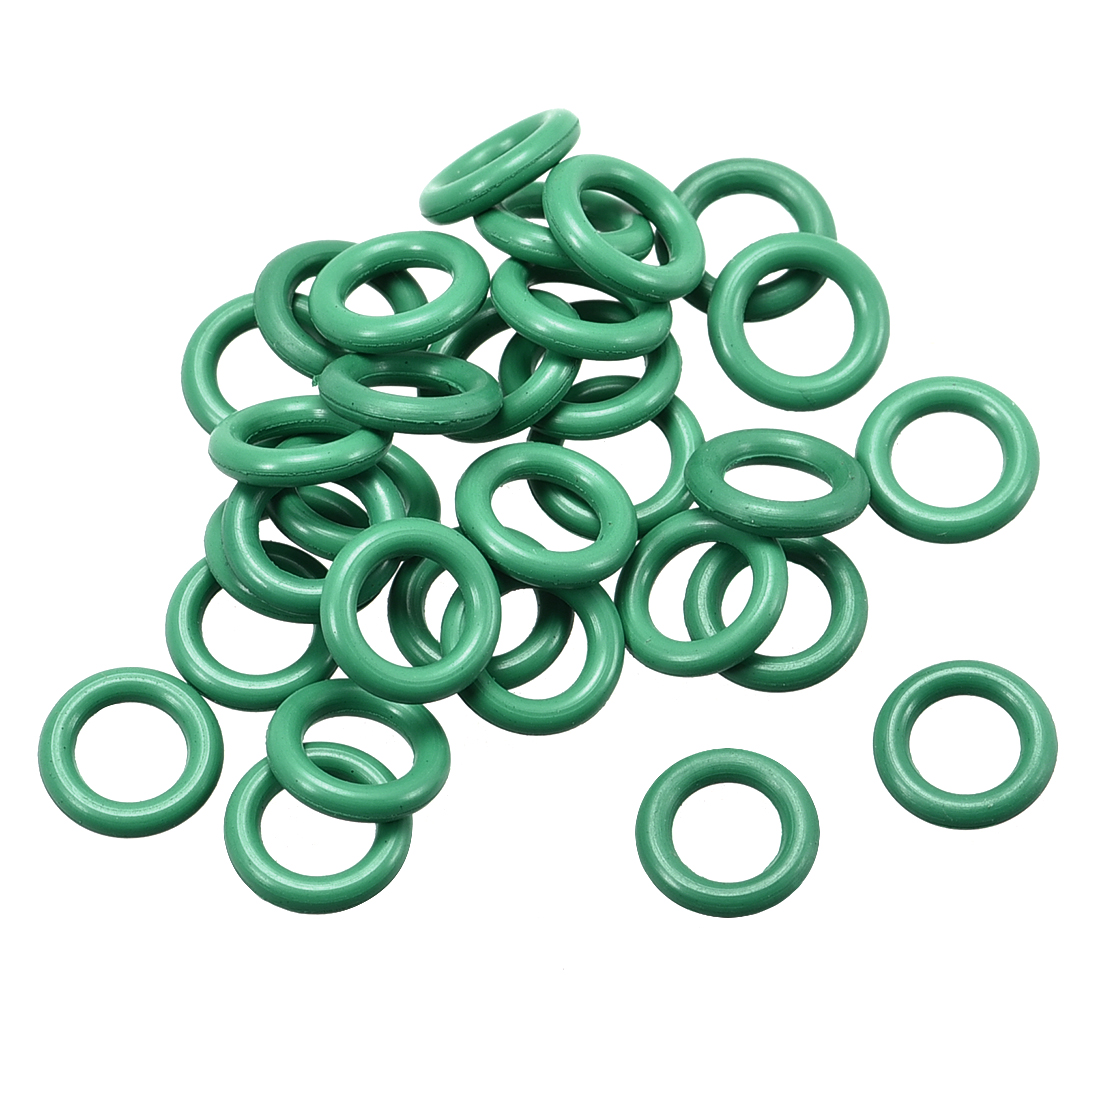 30pcs Green 7.5mm Outer Dia 1.5mm Thickness Sealing Ring O-shape Rubber Grommet